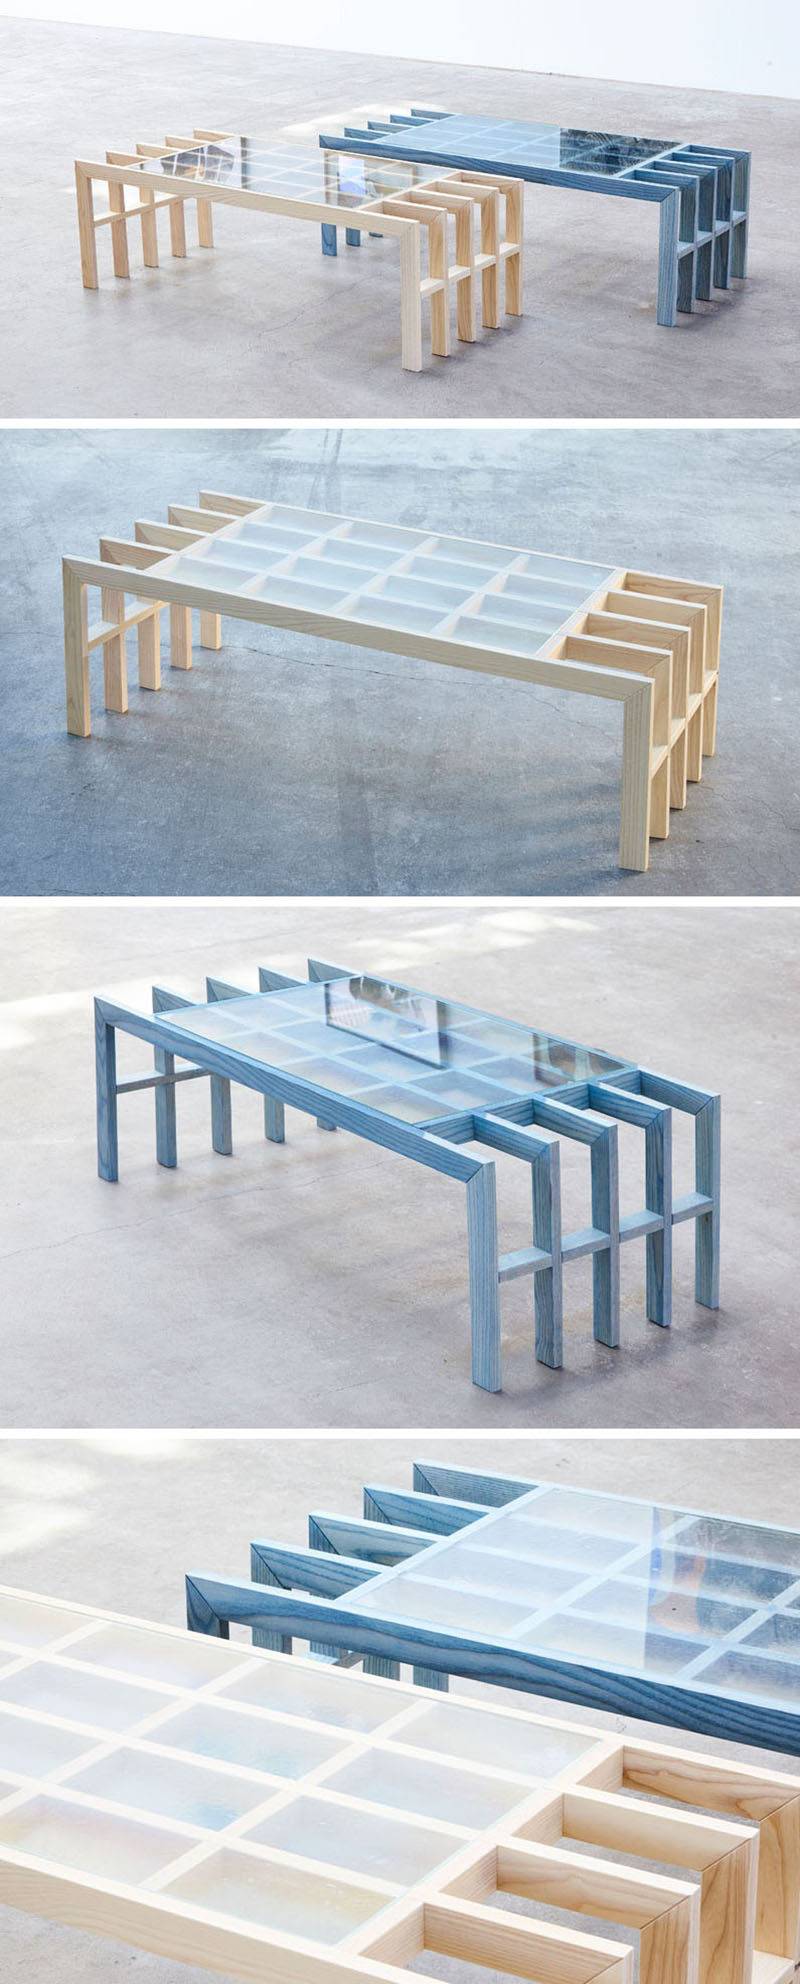 Australian based designer Elliot Bastianon, has created a new modern furniture collection named 'Straight Lines'. #ModernFurniture #Design #CoffeeTable #Wood